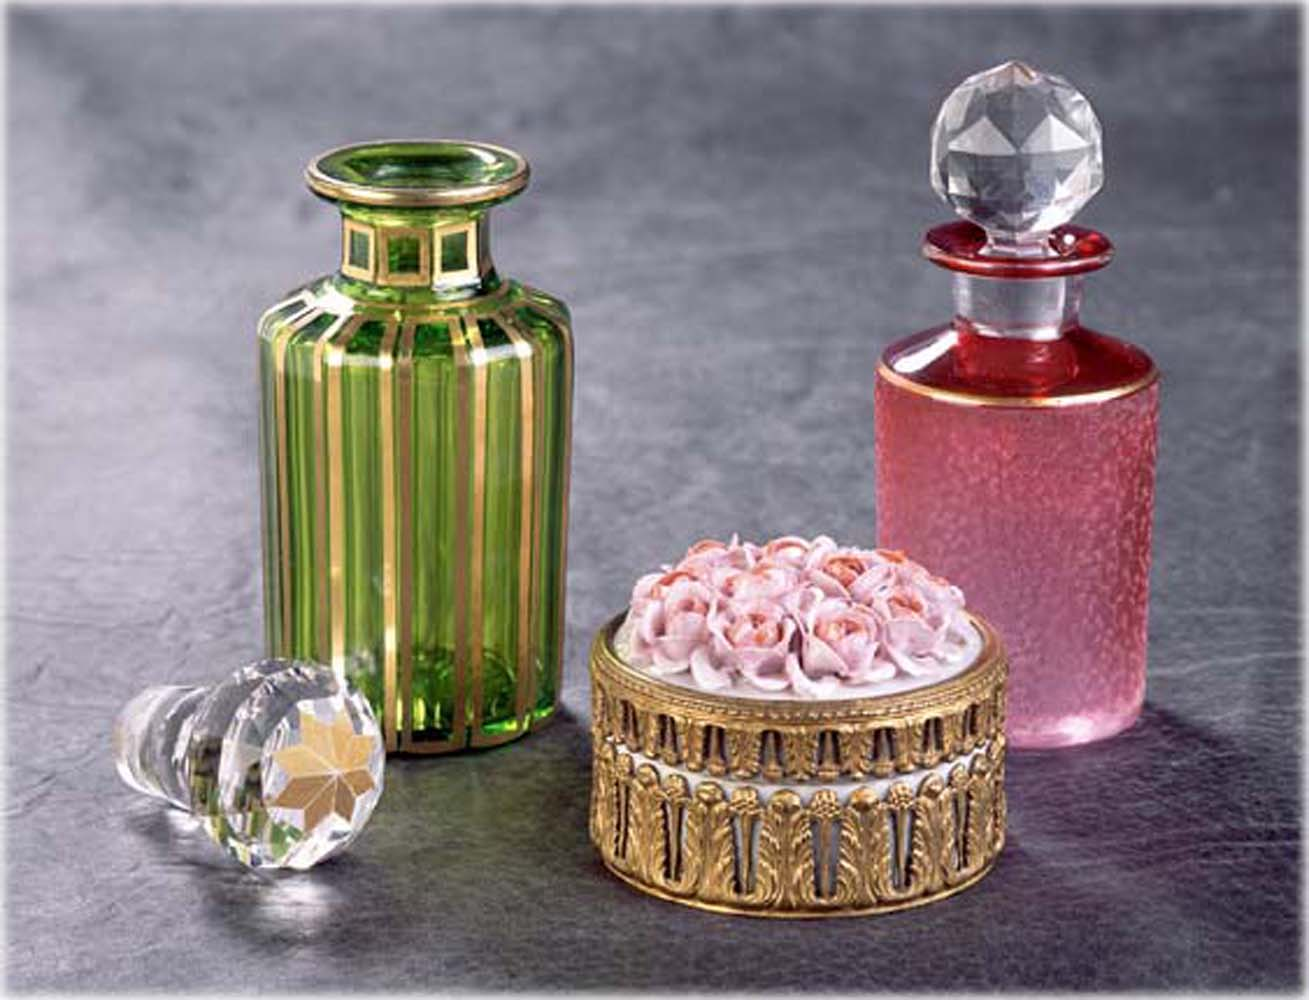 Vintage Green and Pink Perfume bottles and gold round powder puff box with sculpted rose top on gray textured background Product Photography